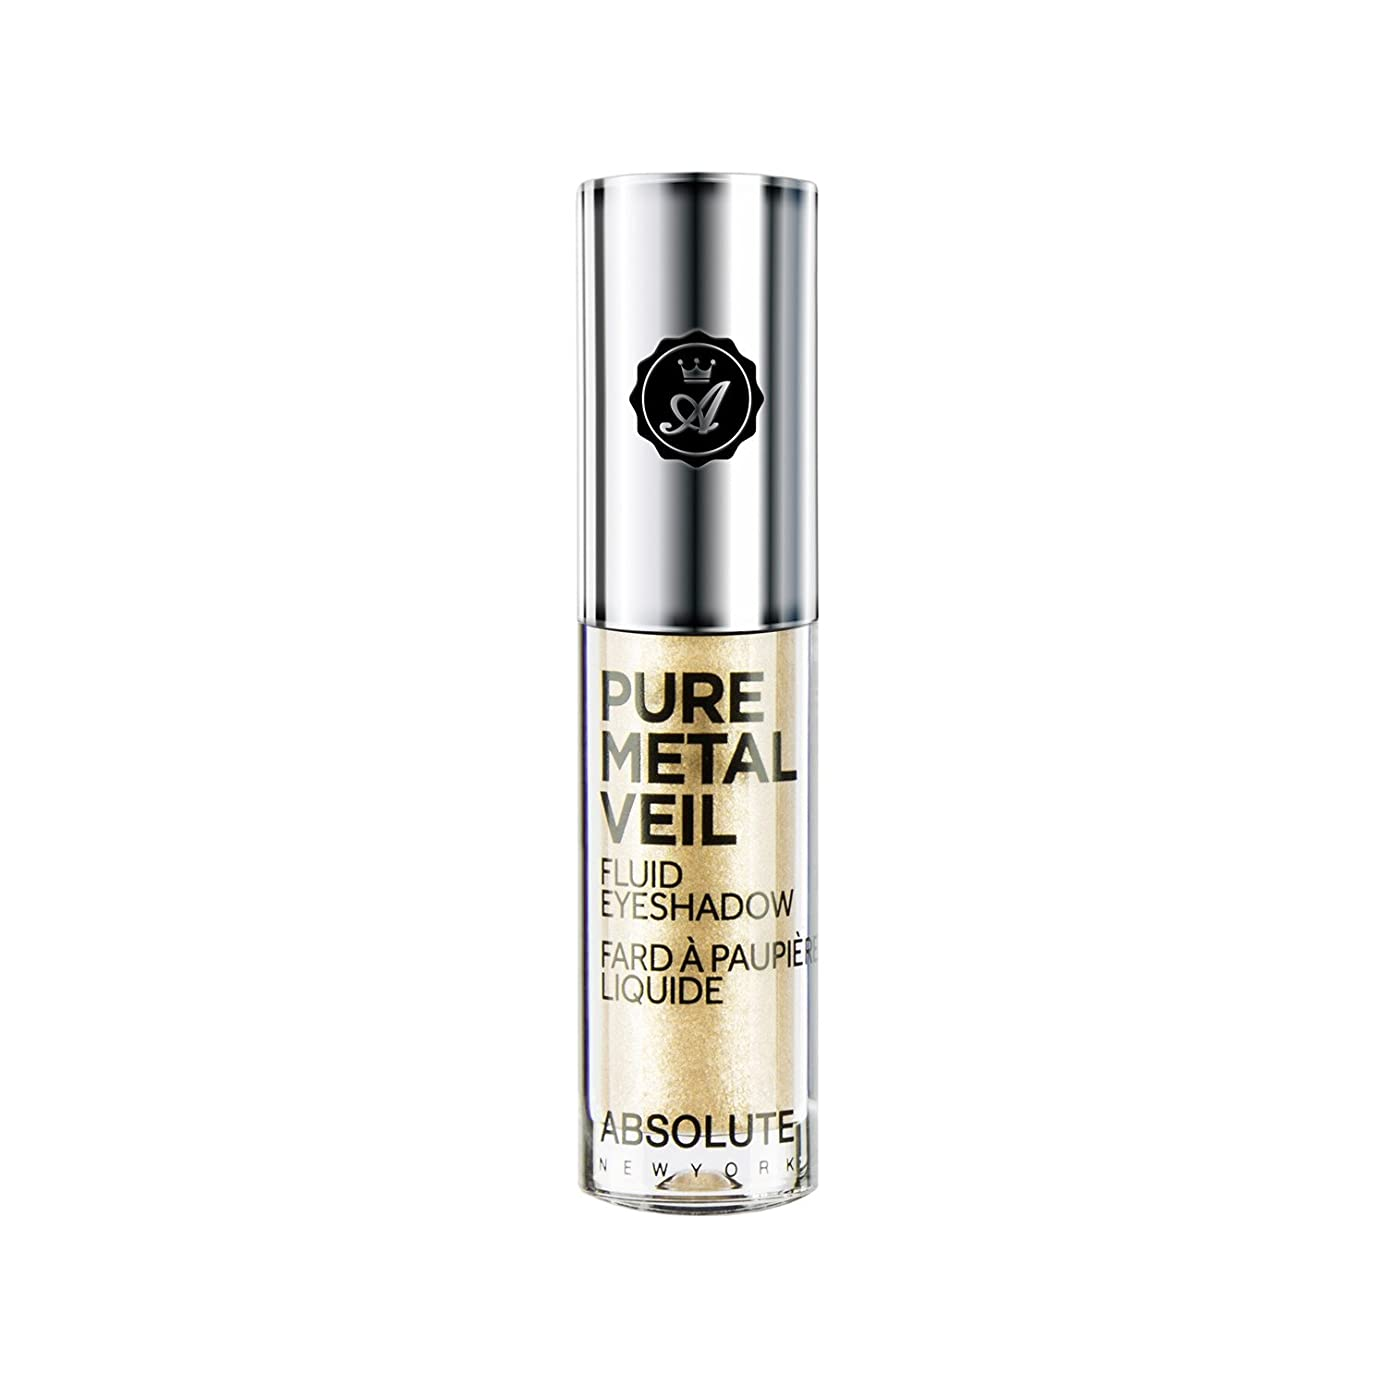 同種のピカリング換気(3 Pack) ABSOLUTE Pure Metal Veil Fluid Eyeshadow - Trust Fund (並行輸入品)